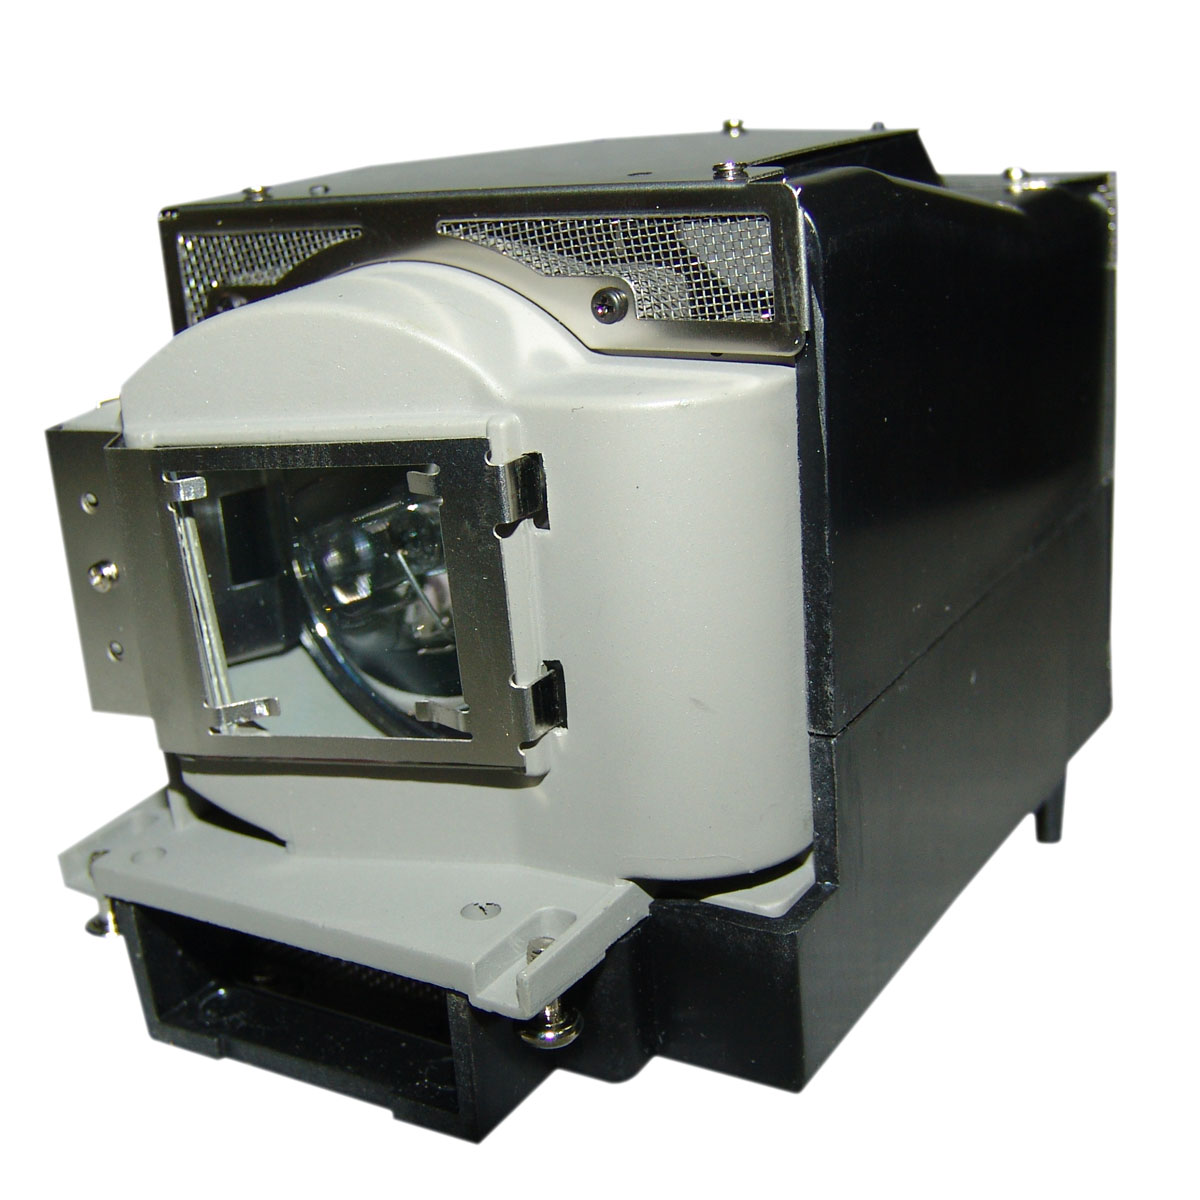 Mitsubishi Projector Bulb Replacement: Lamp Housing For Mitsubishi XD221U Projector DLP LCD Bulb